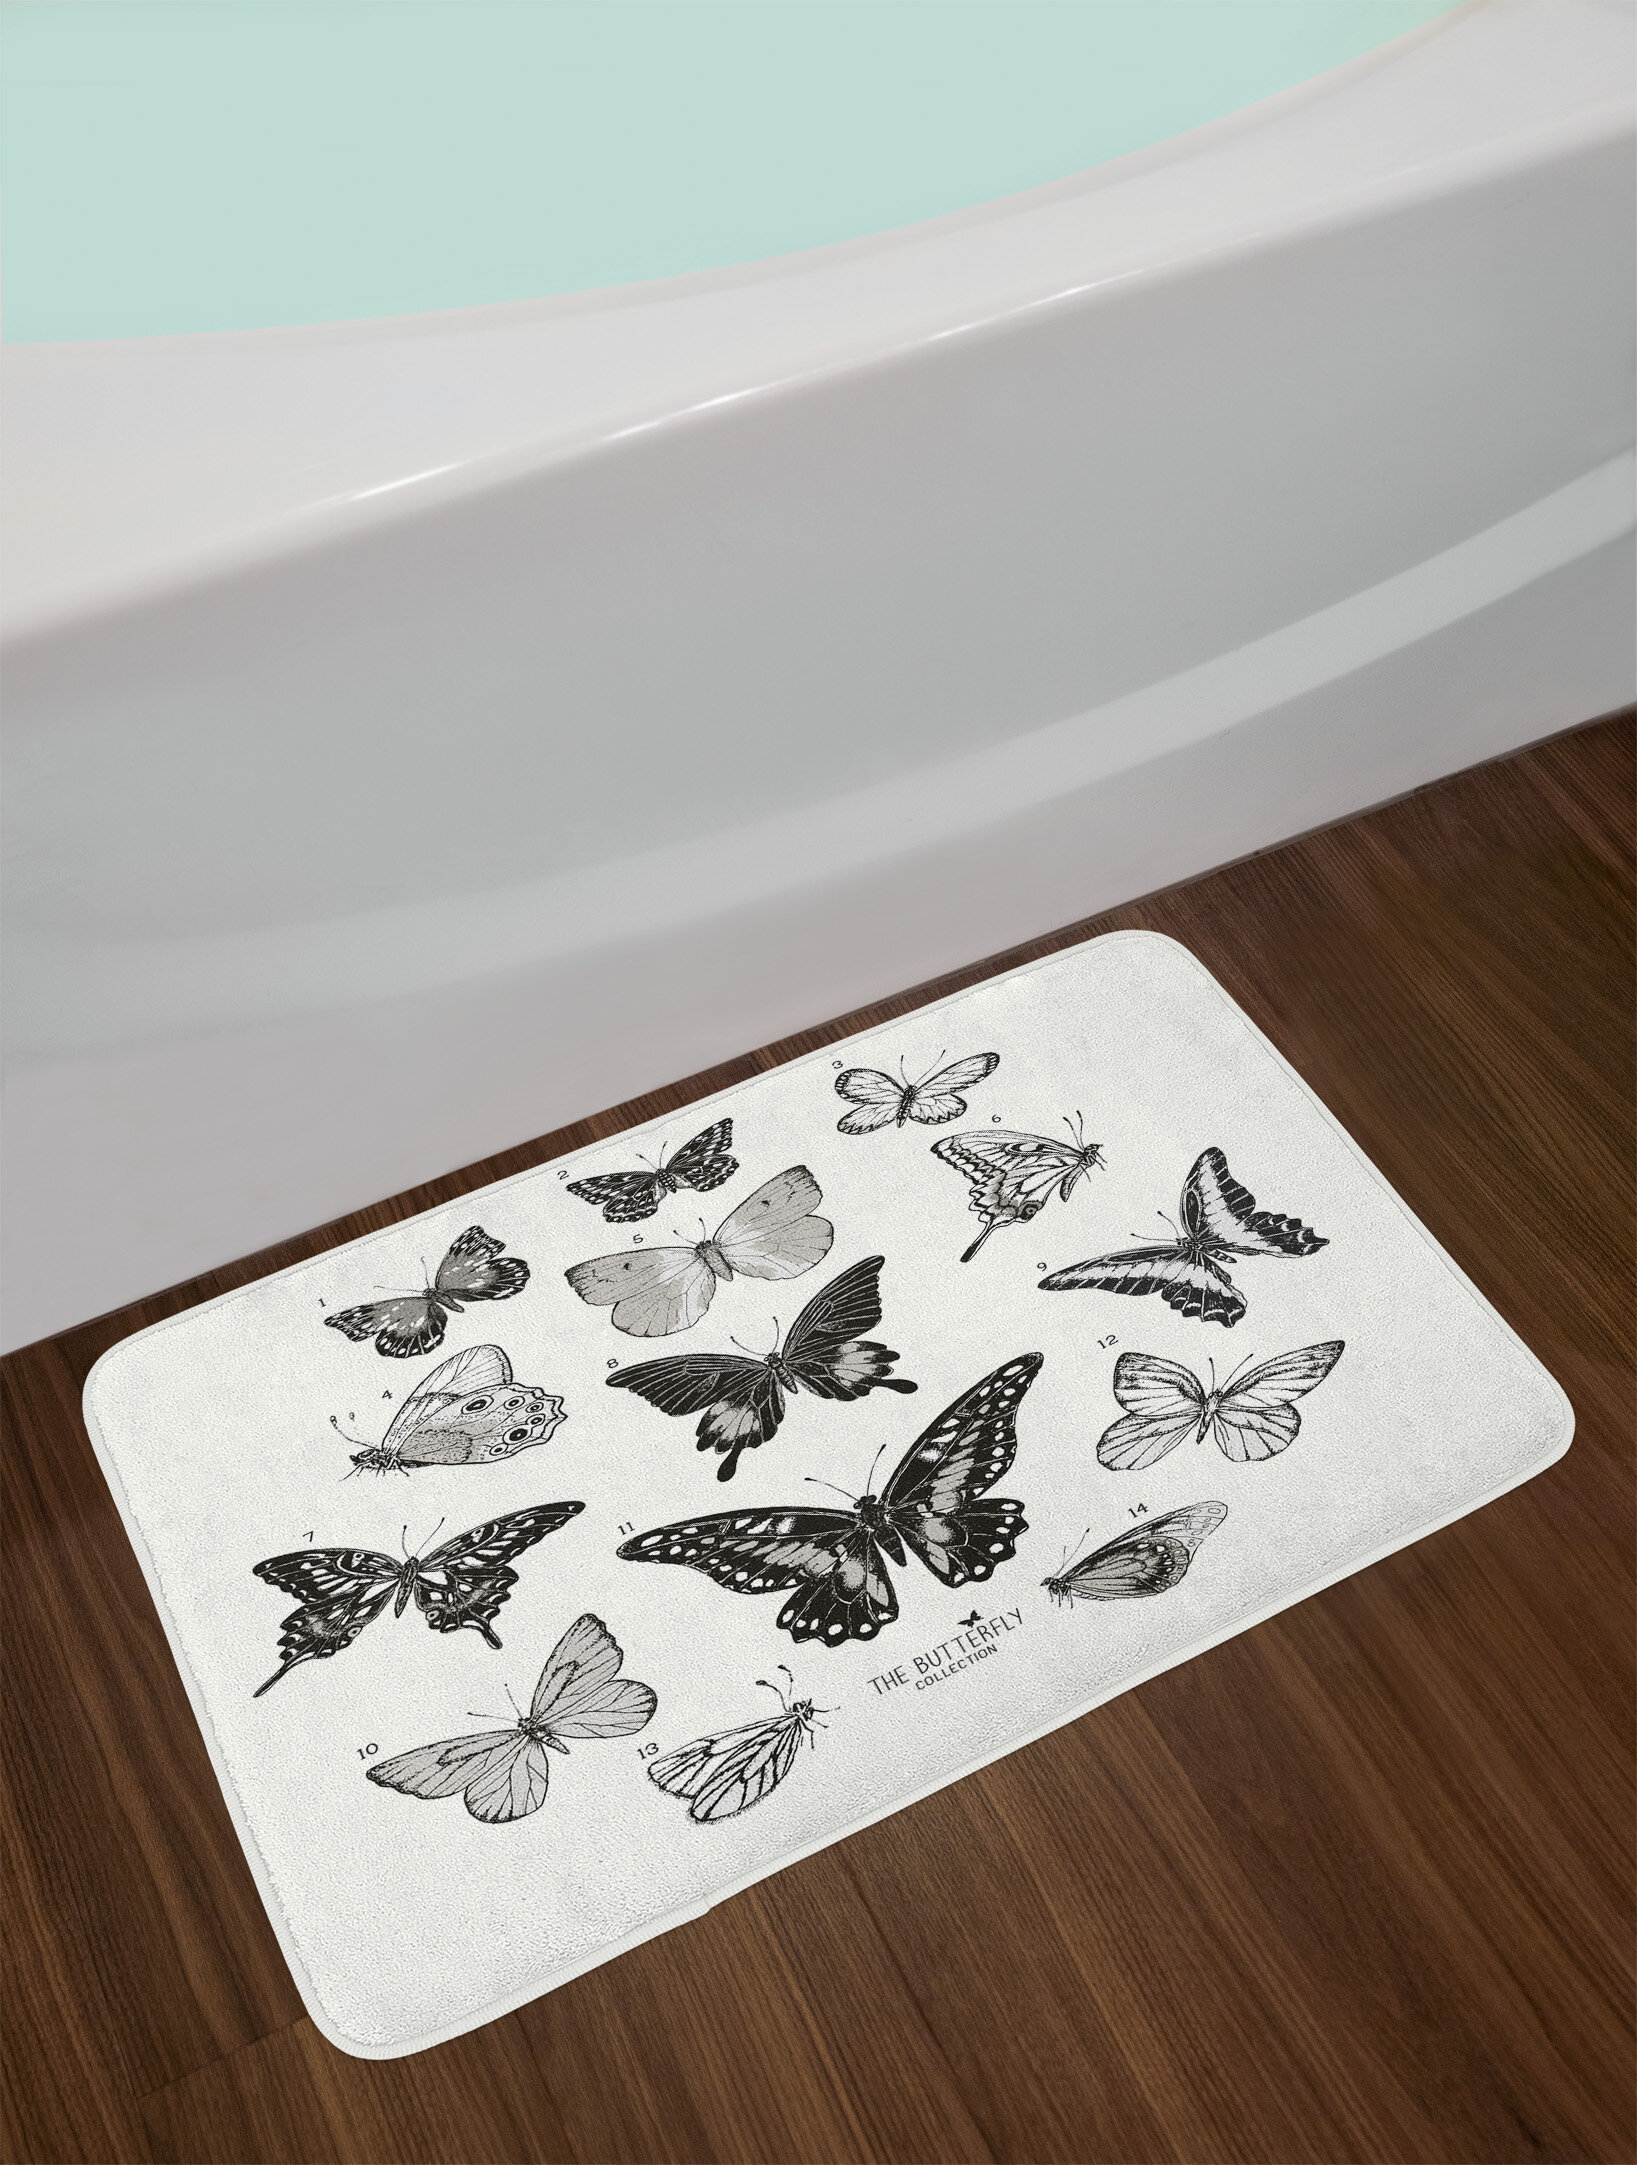 East Urban Home Erfly Large Collection Of Hand Drawn Erflies Realistic Artwork Non Slip Plush Bath Rug Wayfair